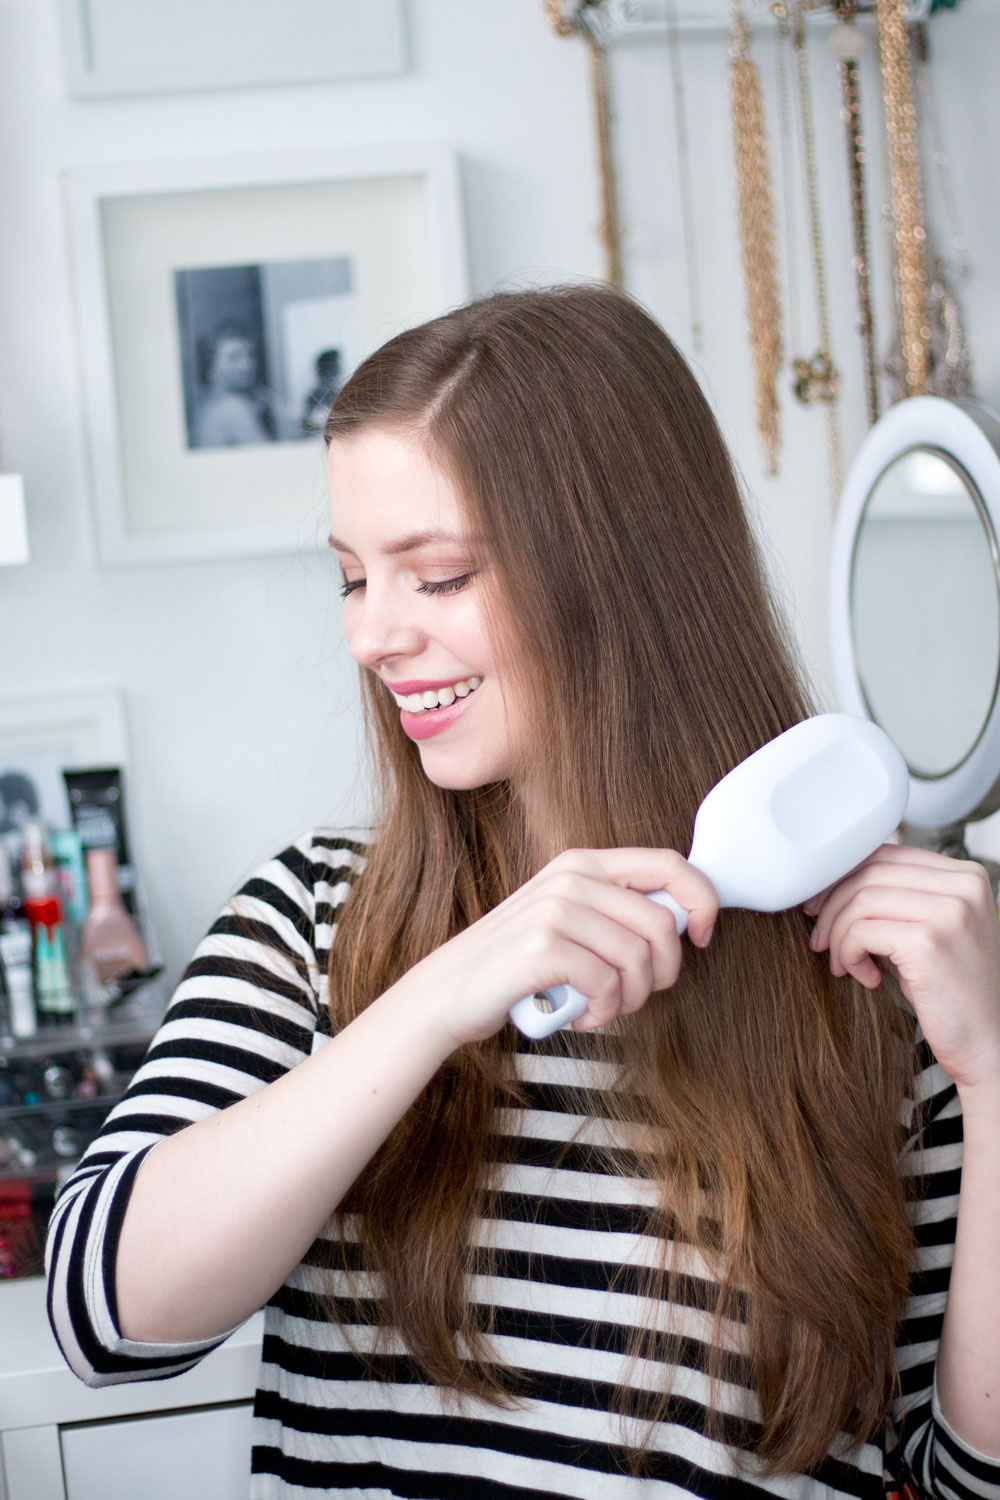 Goody Clean Radiance Oval Cushion Brush Tutorial & Review // Hello Rigby Seattle Beauty & Style Blog